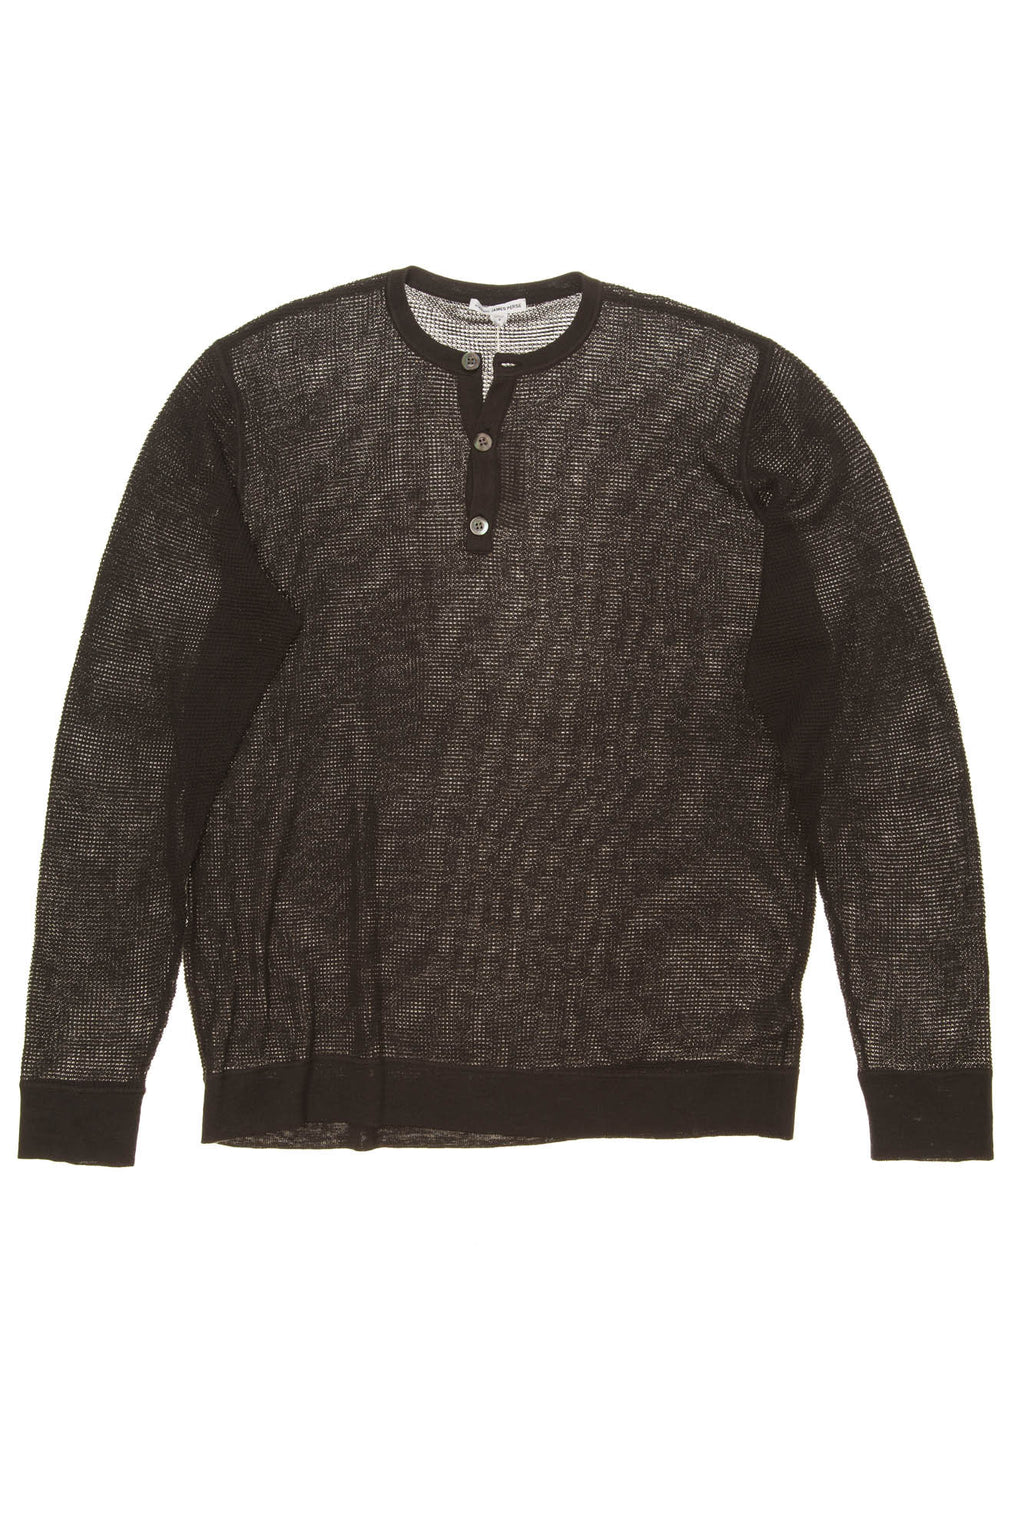 James Perse - Brown Long Sleeve Thermal - 3